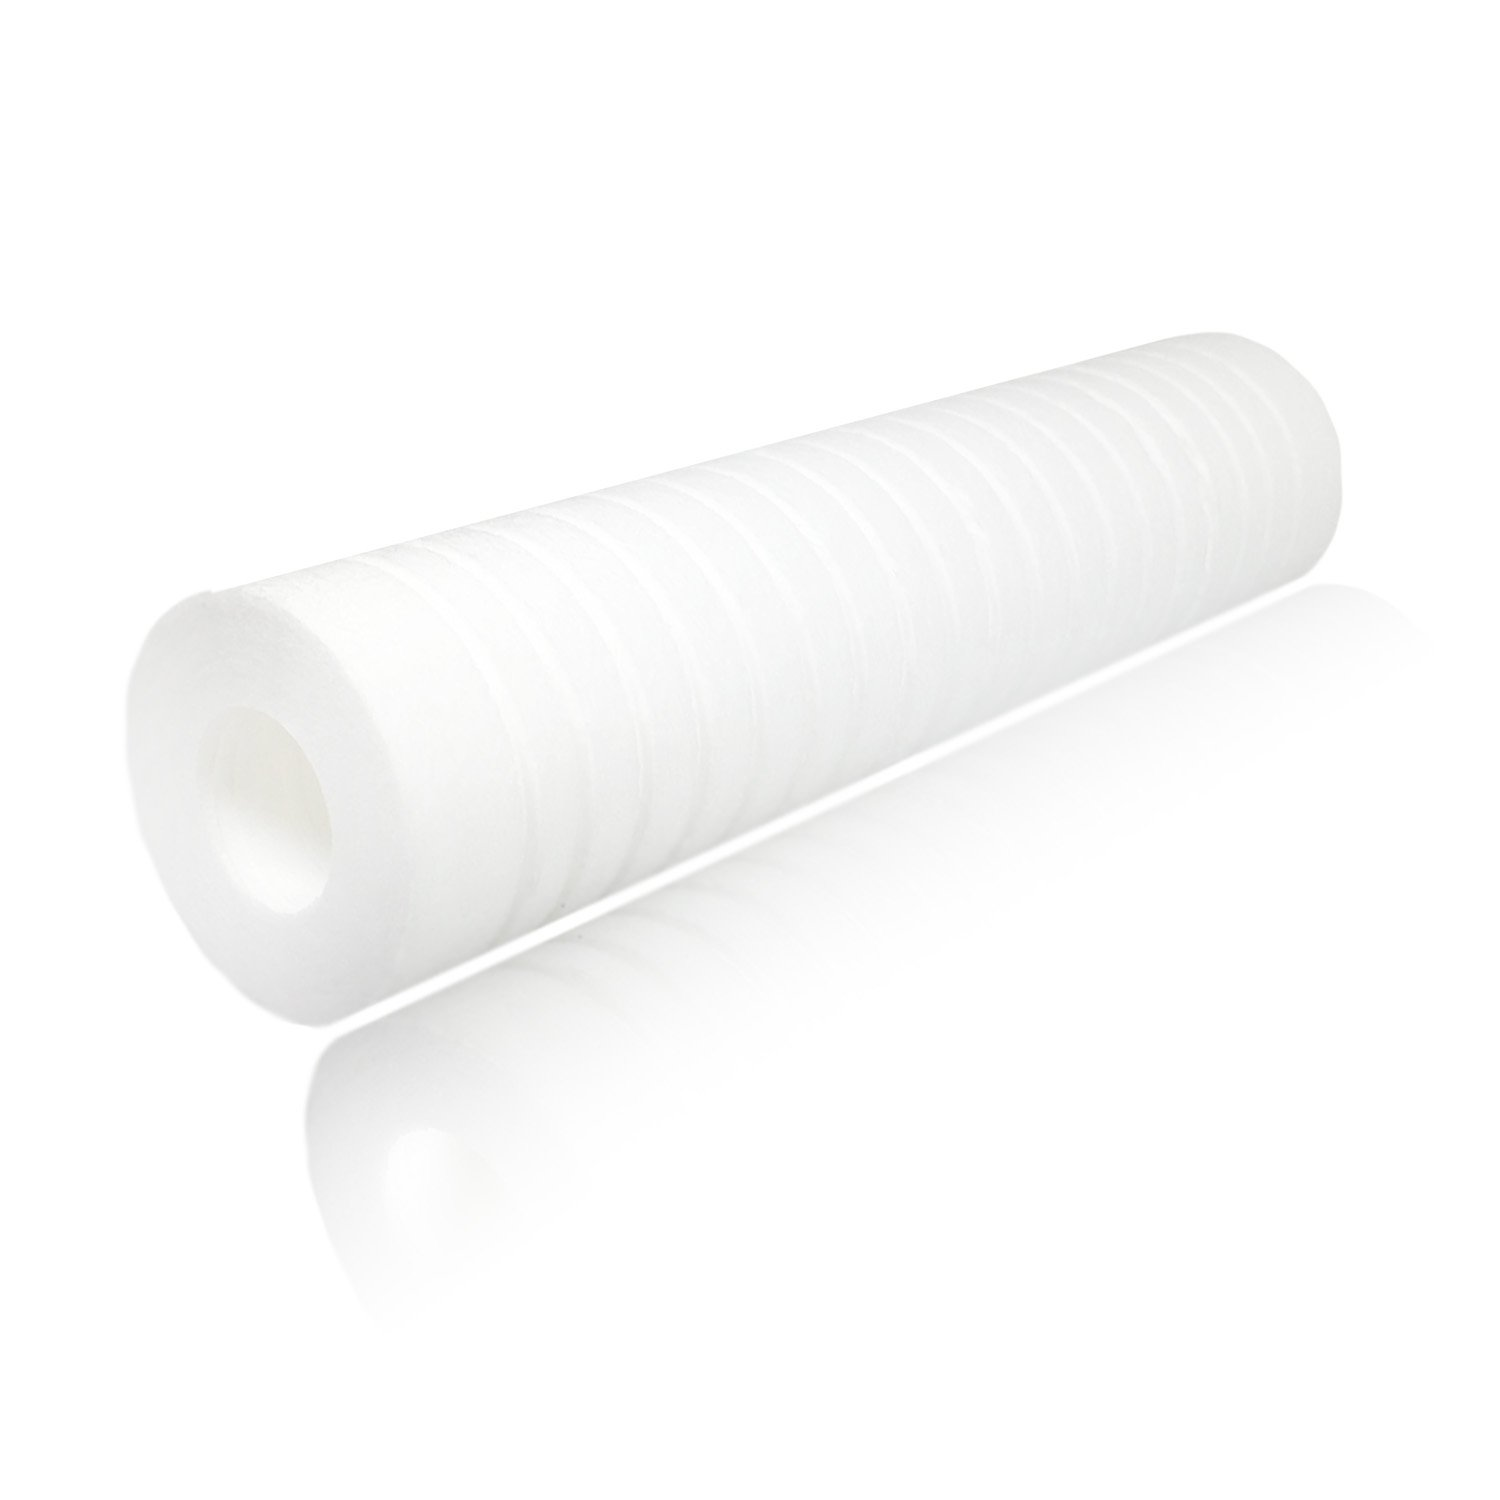 CFS110 25-Pack Aquaboon 5 Micron 10 x 2.5 Grooved Sediment Water Filter Replacement Cartridge for Any 10 inch RO Unit AP110 RS14 Whole House Sediment Filtration WFPFC5002 Compatible with P5